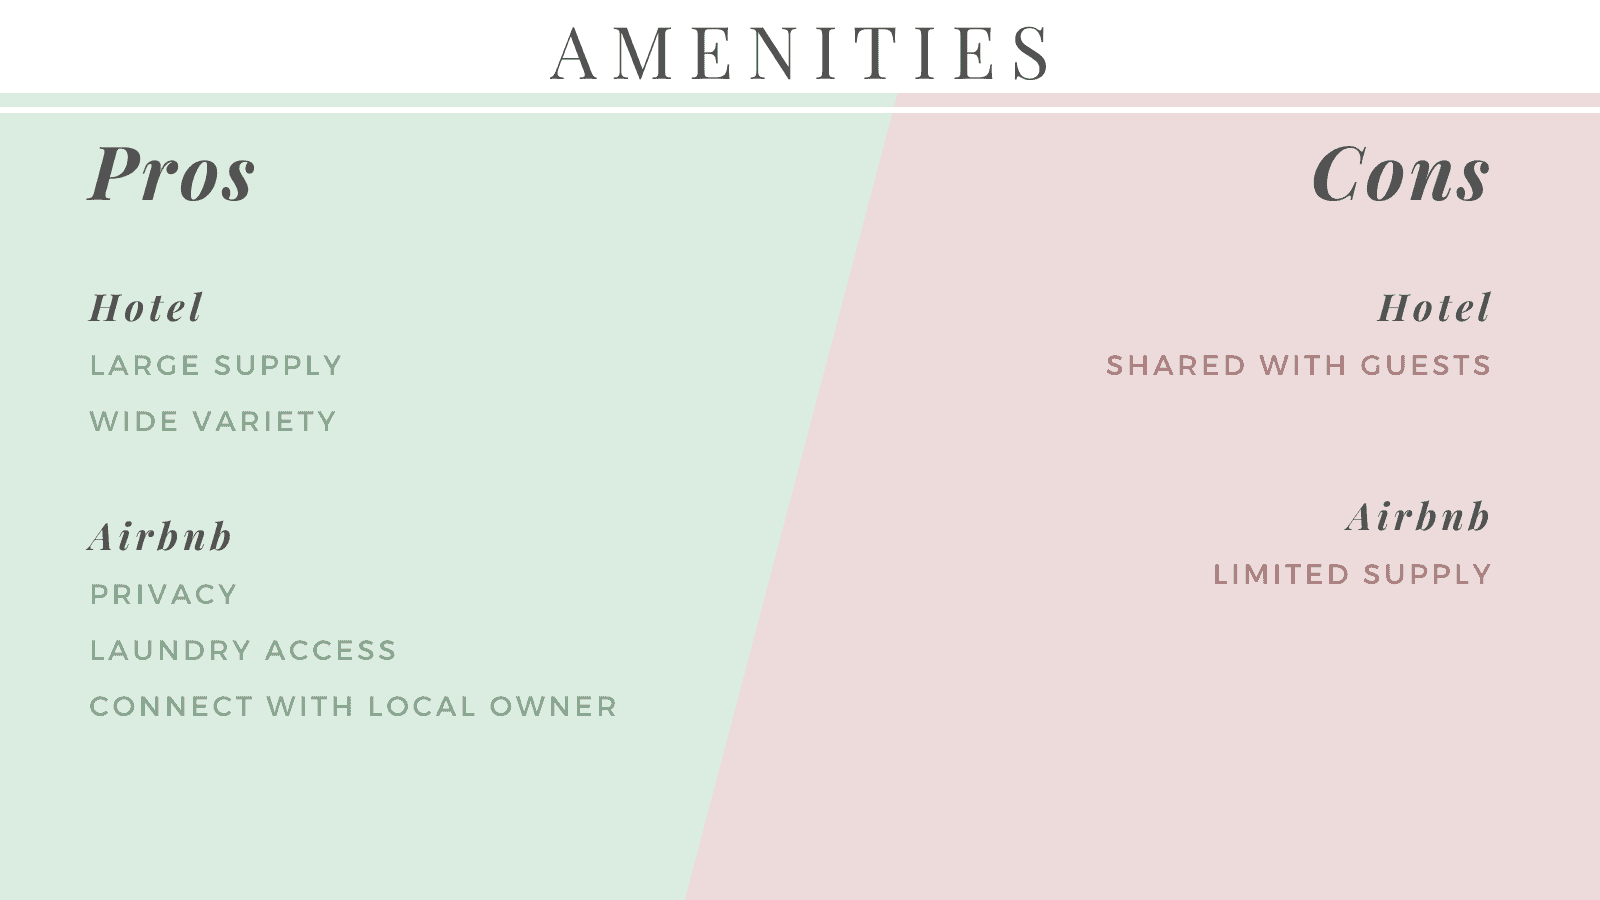 Hotel vs Airbnb Amenities Pros and Cons